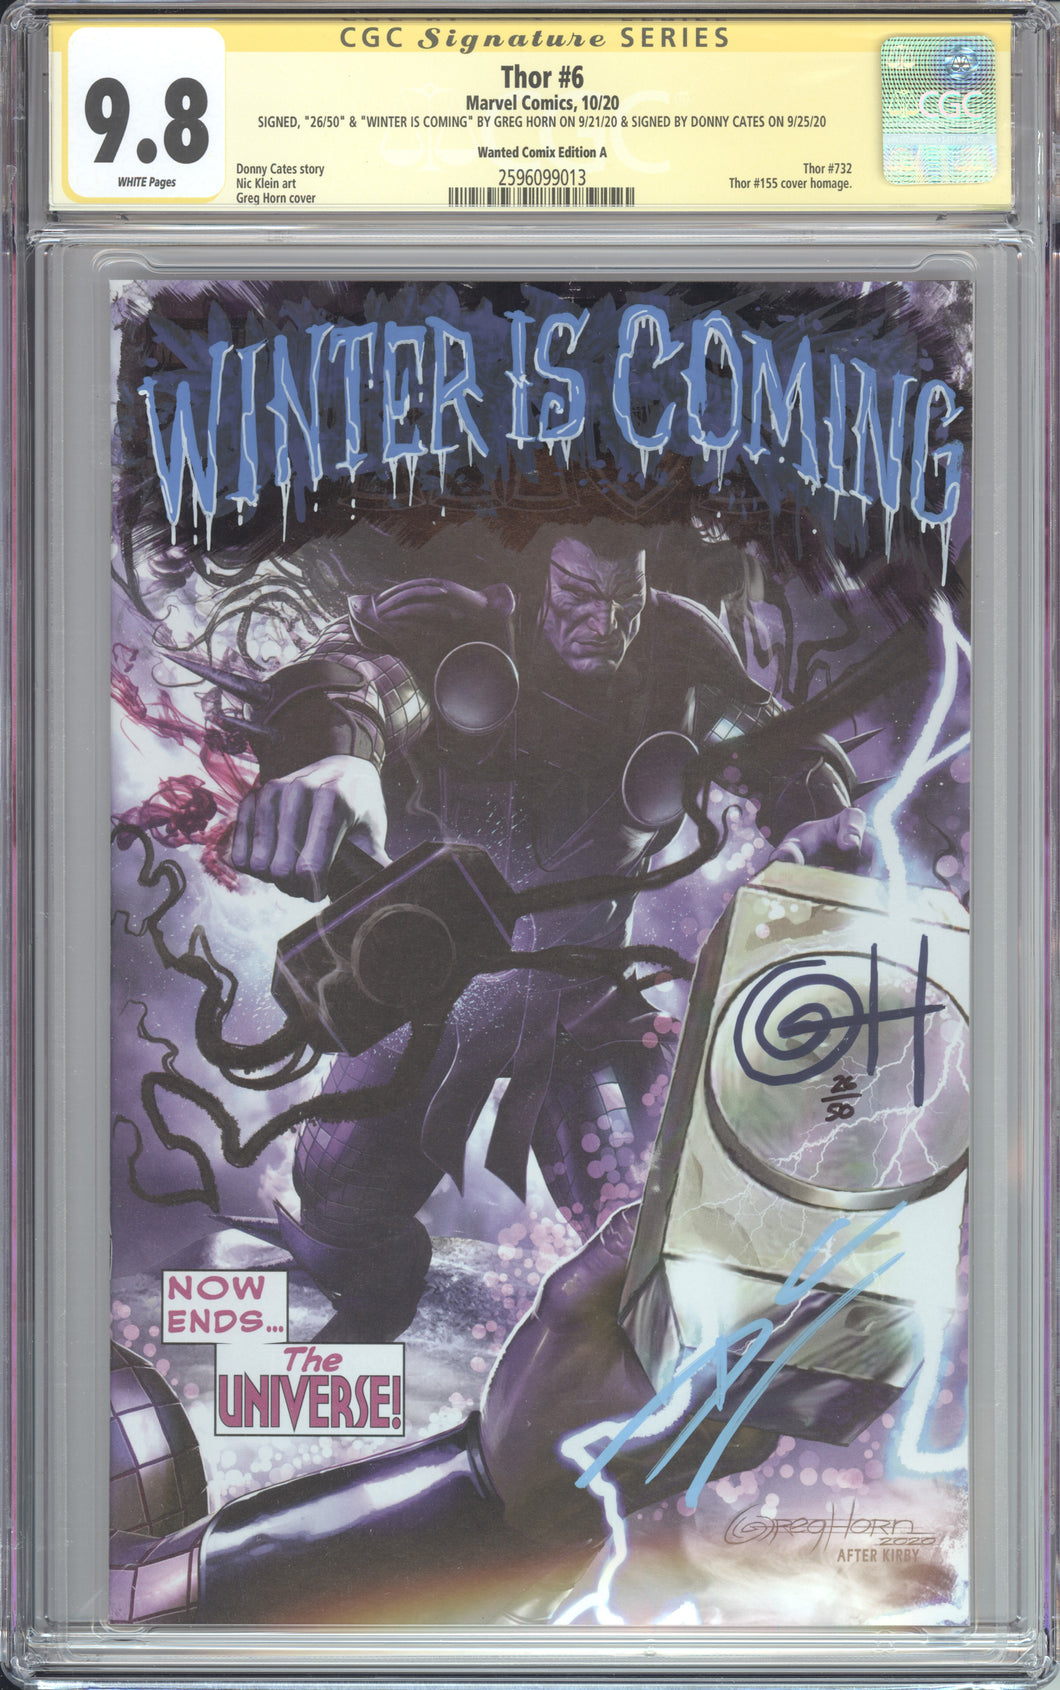 THOR #6 VARIANT CVR A CGC 9.8 SS SIGNED & REMARKED BY GREG HORN and DONNY CATES